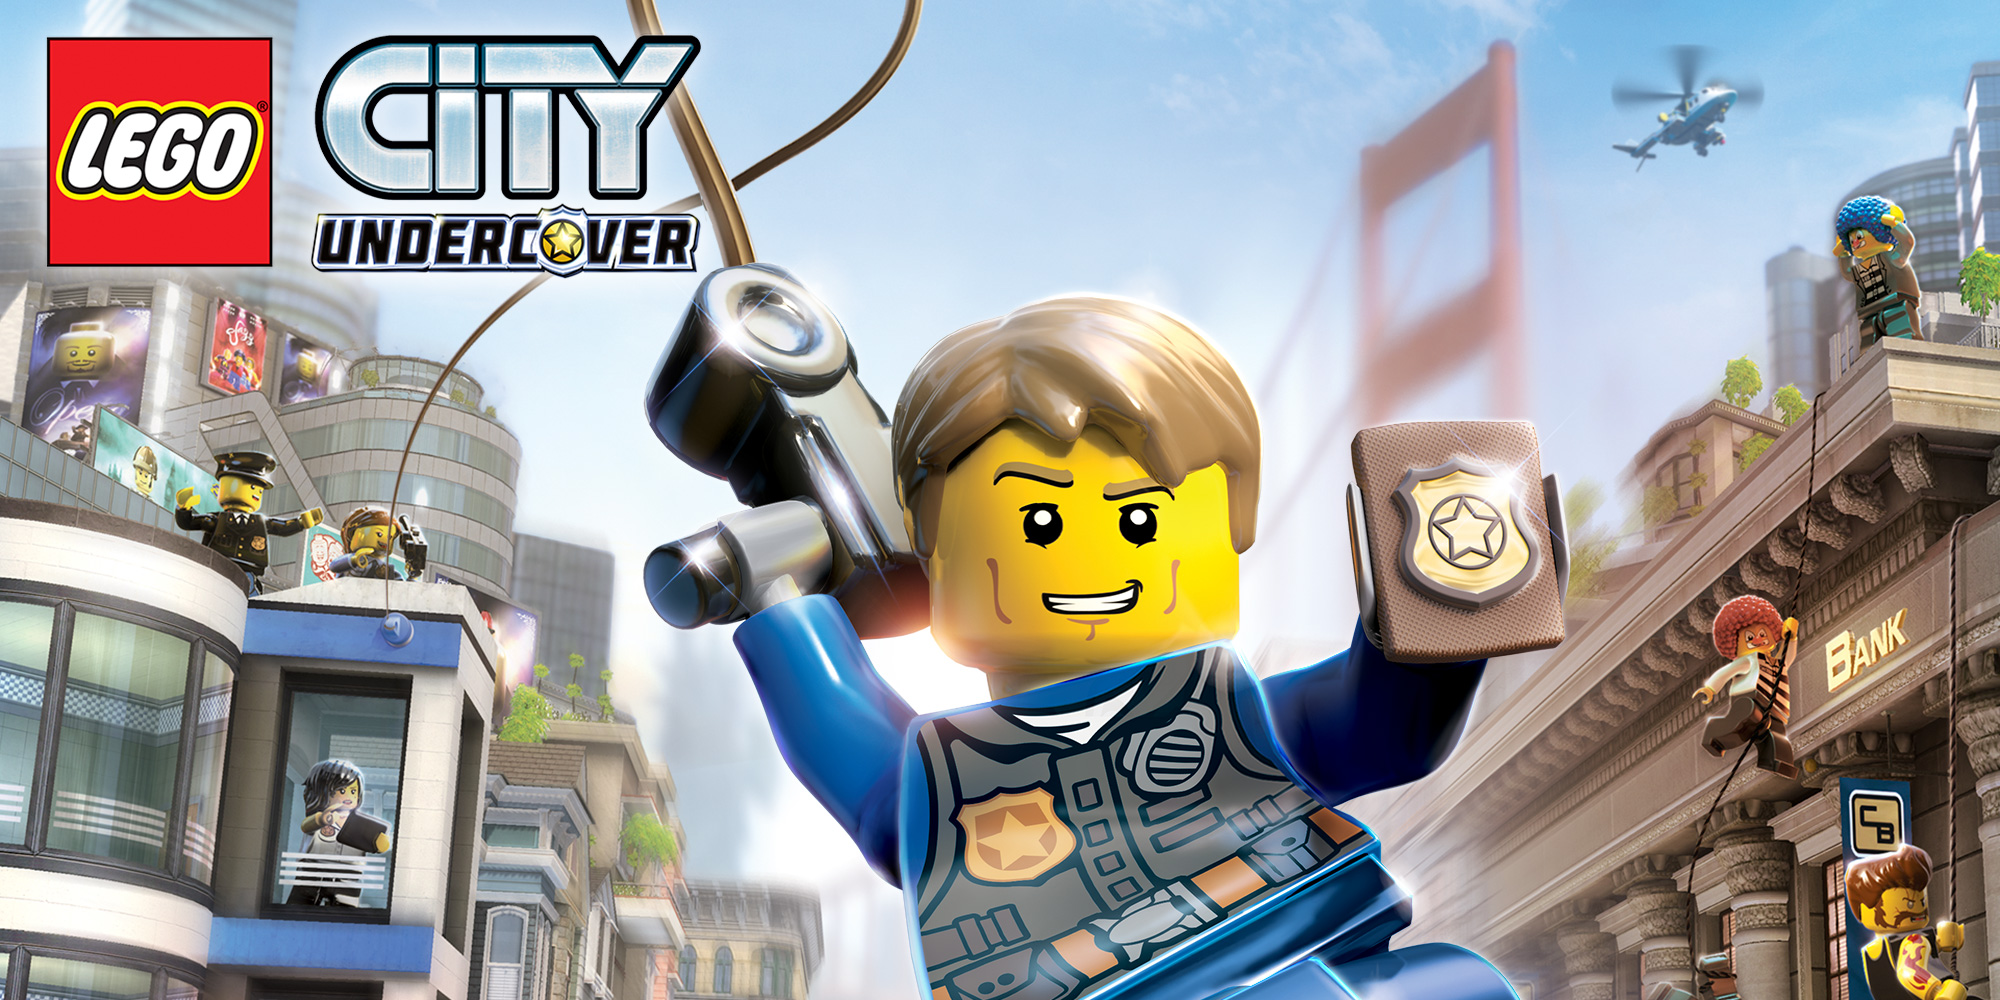 test de lego city undercover sur nintendo switch que vaut chase mccain en 2017 geeks and com 39. Black Bedroom Furniture Sets. Home Design Ideas